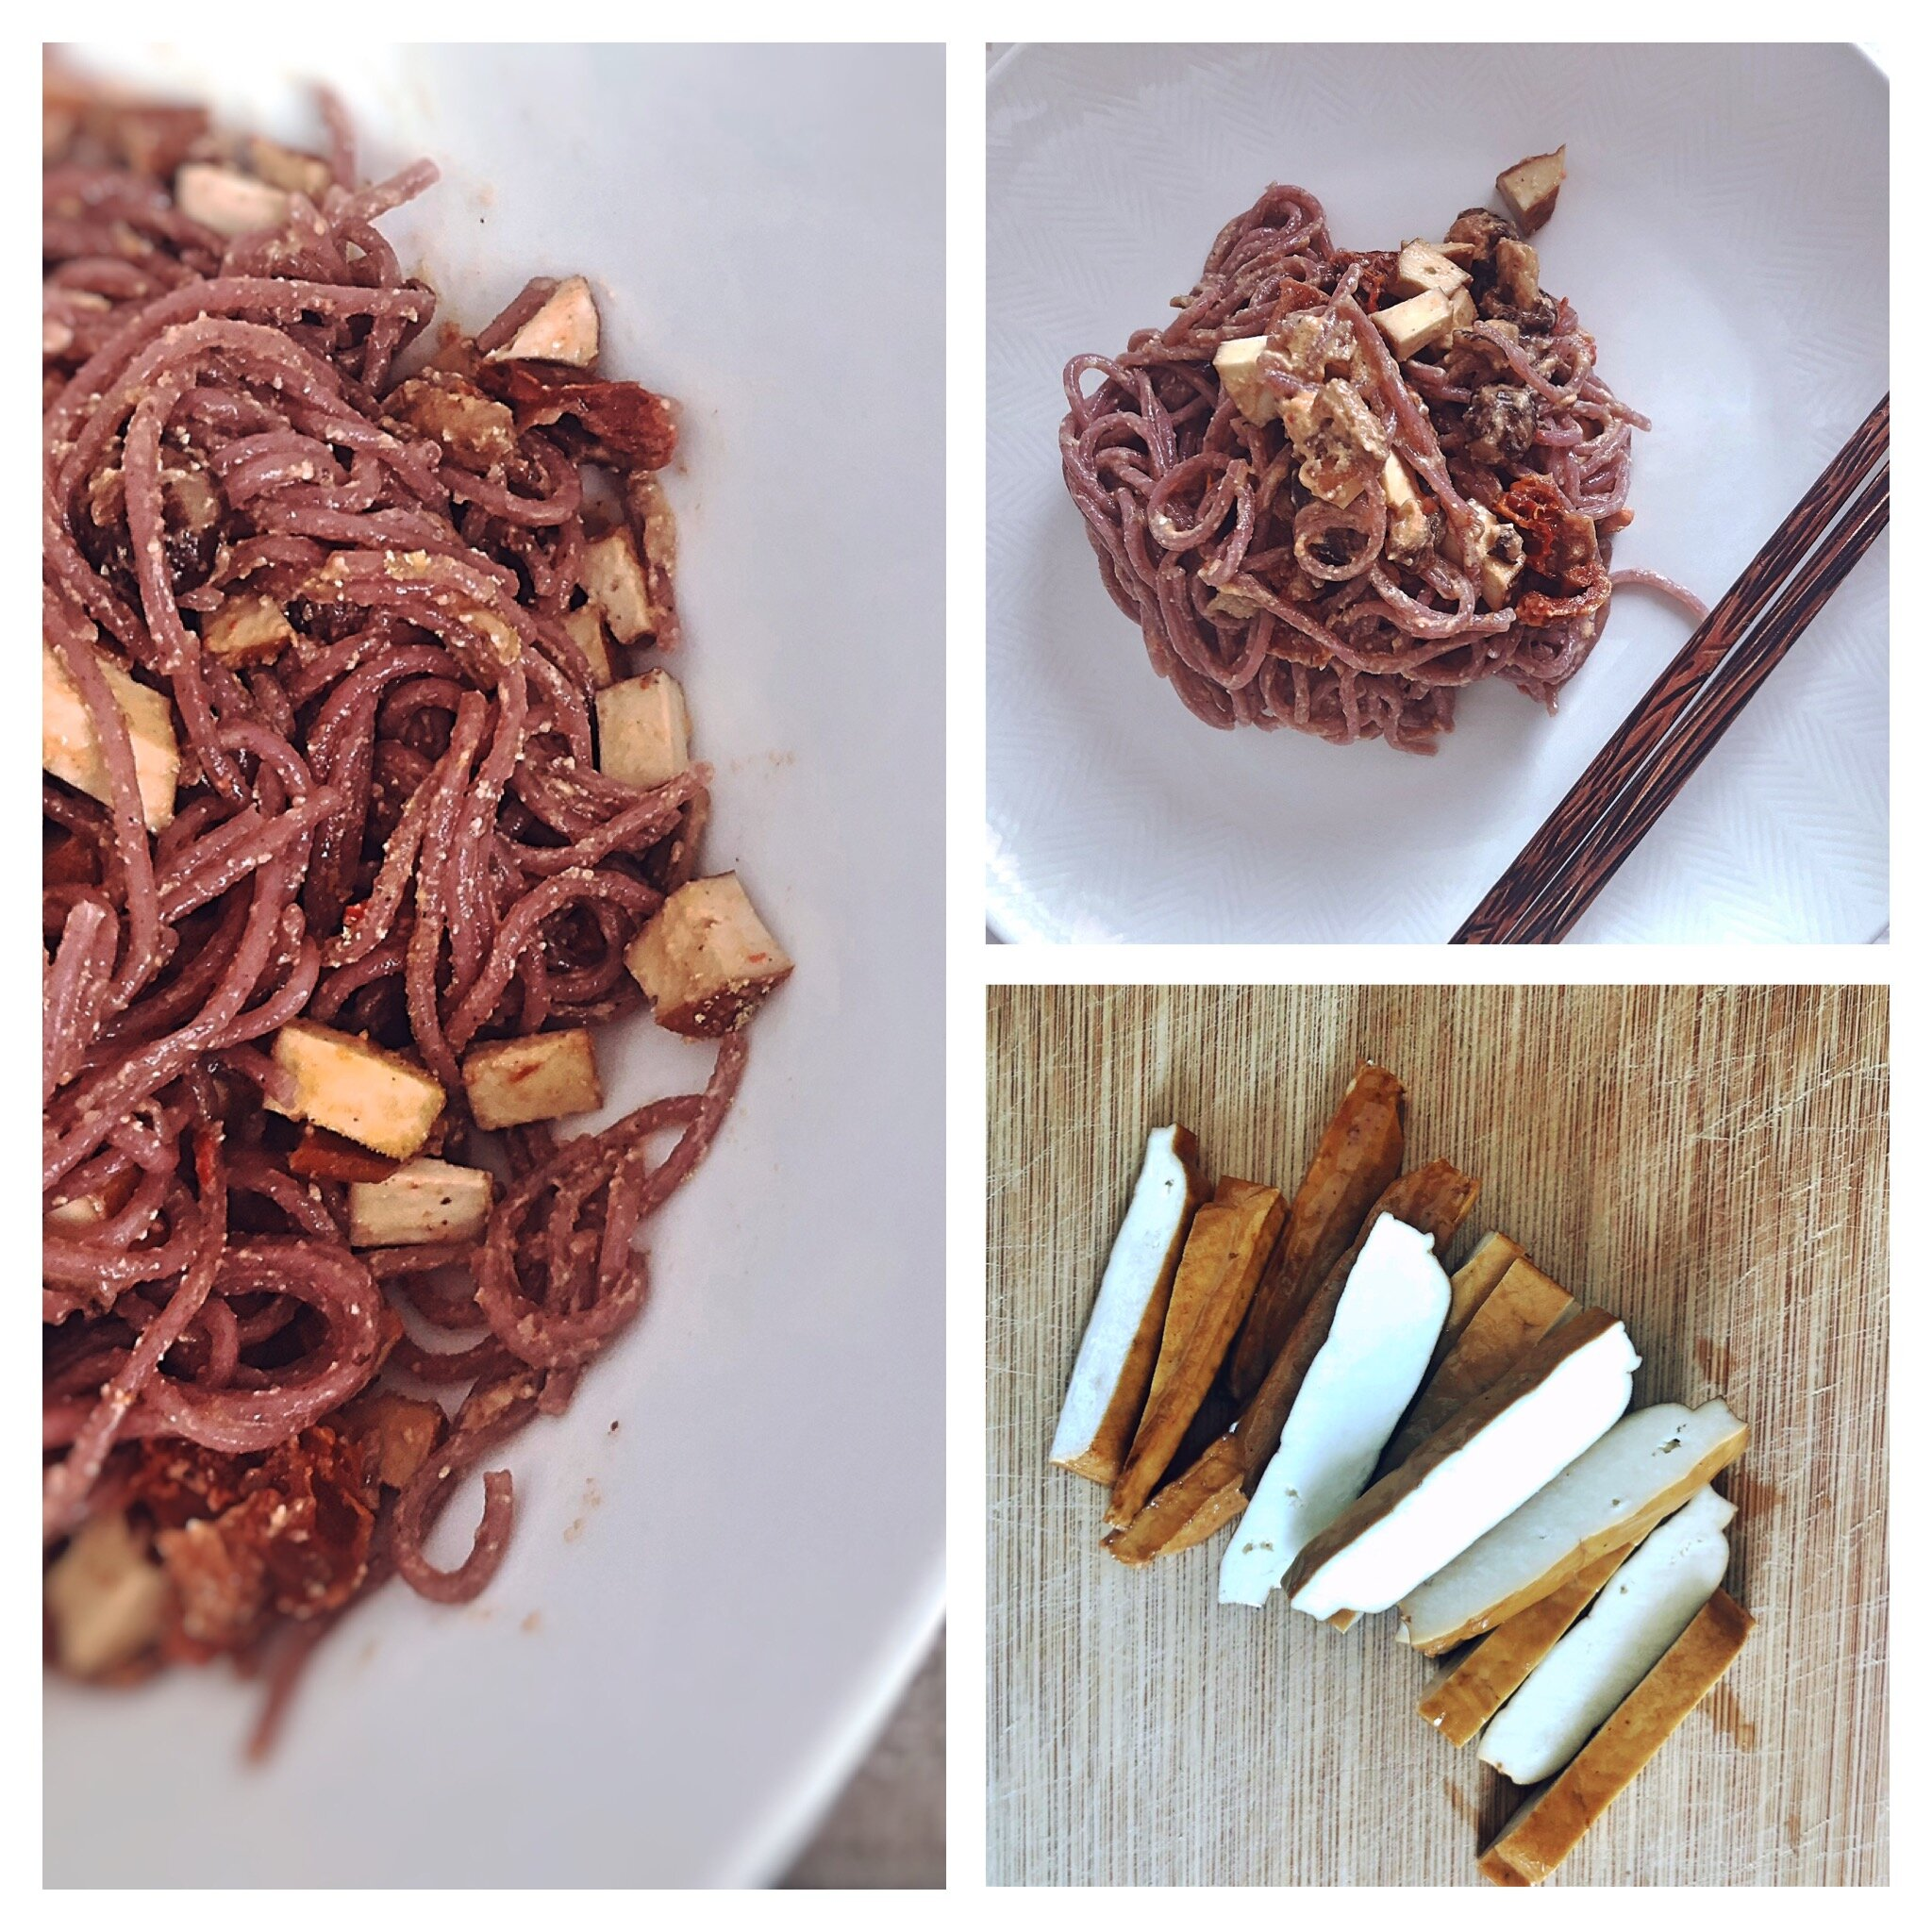 Ingredients: Purple Sweet potato noodles, Smoked hard Tofu (also sold as five spiced tofu), Garlic, tahini, Tamari, nooch, olive oil  Method: Cook the noodles are per the packaging, drain and cool and drizzle with olive oil, Grill the tofu with some sliced garlic (cubed or sliced) until browned. For the Sauce: Combine tahini, Tamari and nutritional yeast into the oiled noodles, adding in the garlic tofu.  Serve along side a crunchy shredded cabbage and carrot salad.